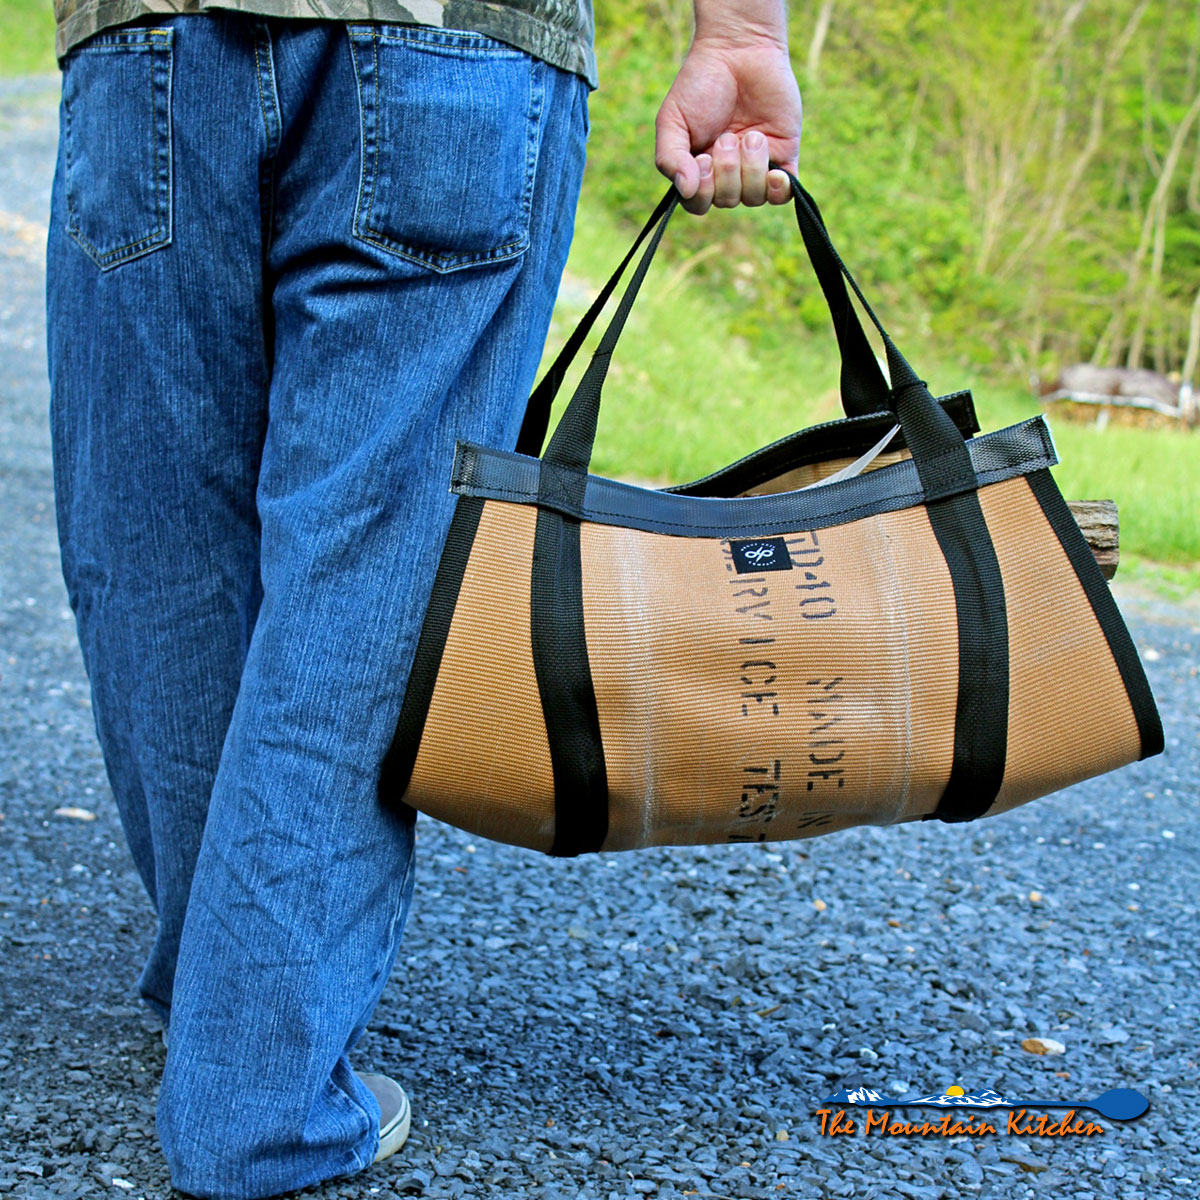 UncommonGoods Fire Hose Log Carrier